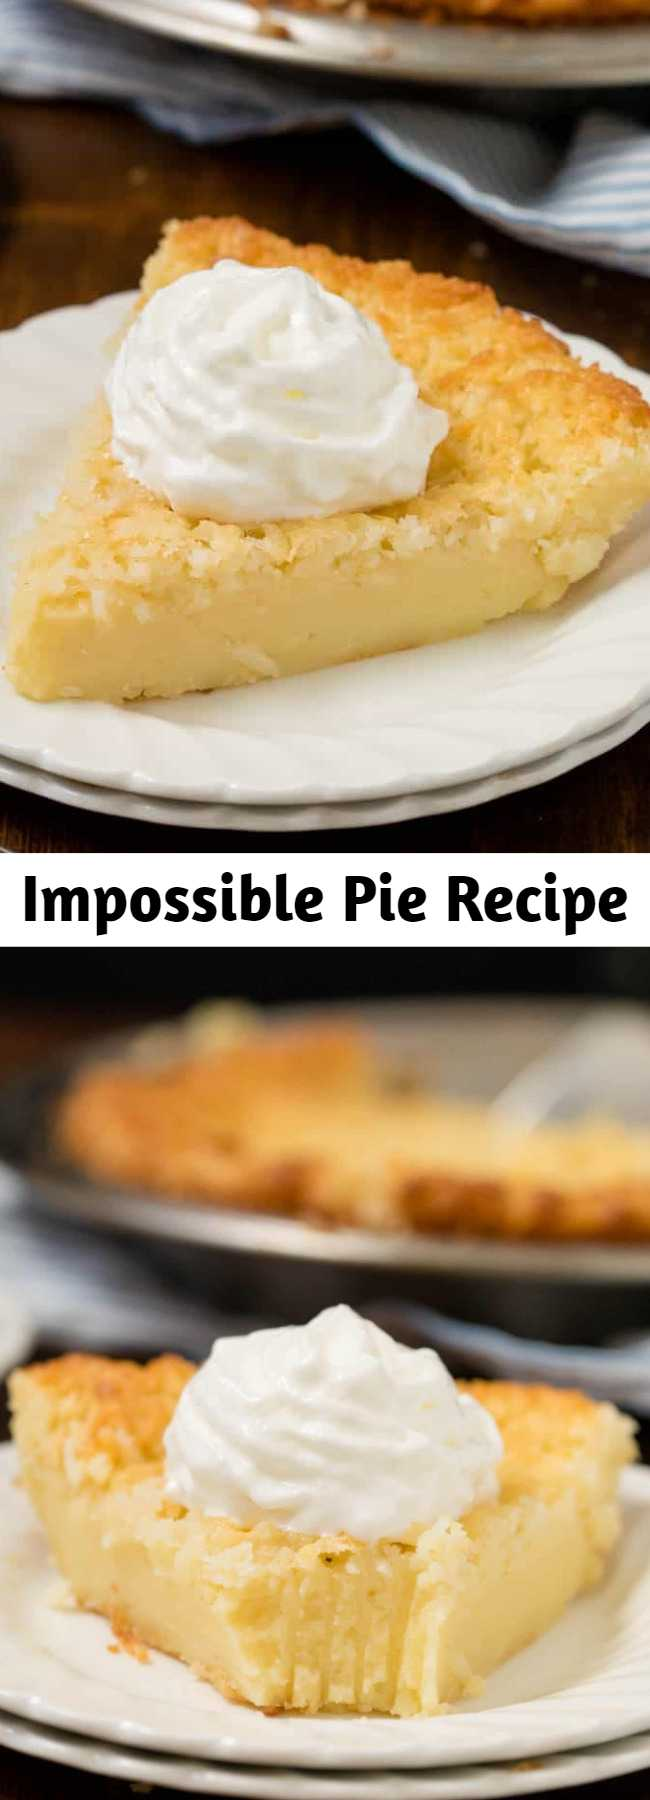 Impossible Pie Recipe - The easiest pie you will ever bake! It magically forms its own crust plus two delicious layers while baking. This vintage pie has been around for a long time and I can see why. It's easy to make and is scrumptious to eat! Why is it called Impossible Pie? I think it has something to do with the fact that it bakes it's own crust. All the ingredients are dumped into the pie plate and you let your oven work it's magic. #impossiblepie #pie #desserts